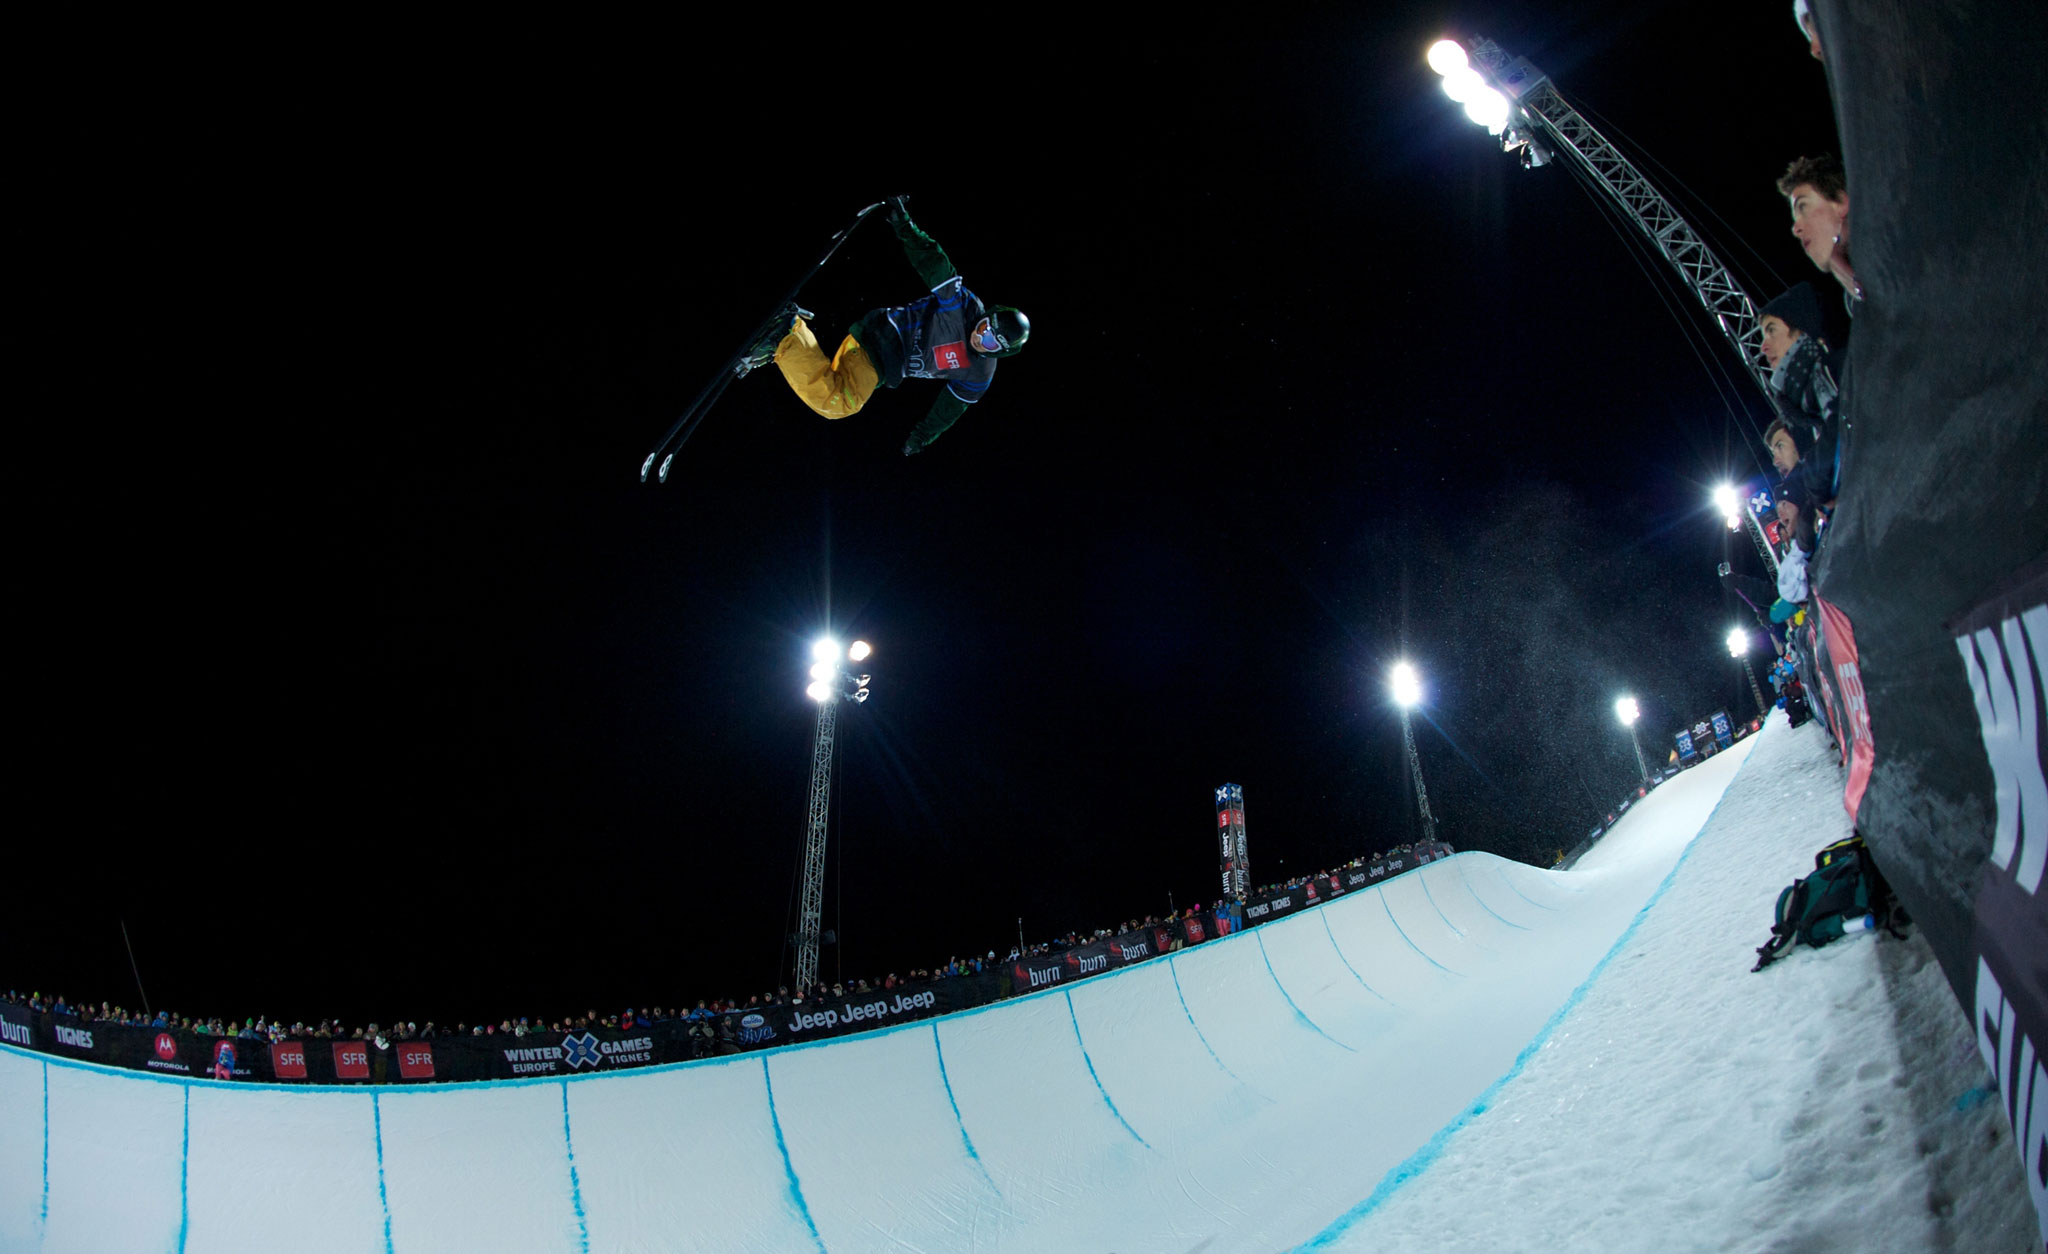 Justin Dorey competing at Winter X Games in Tignes, France.